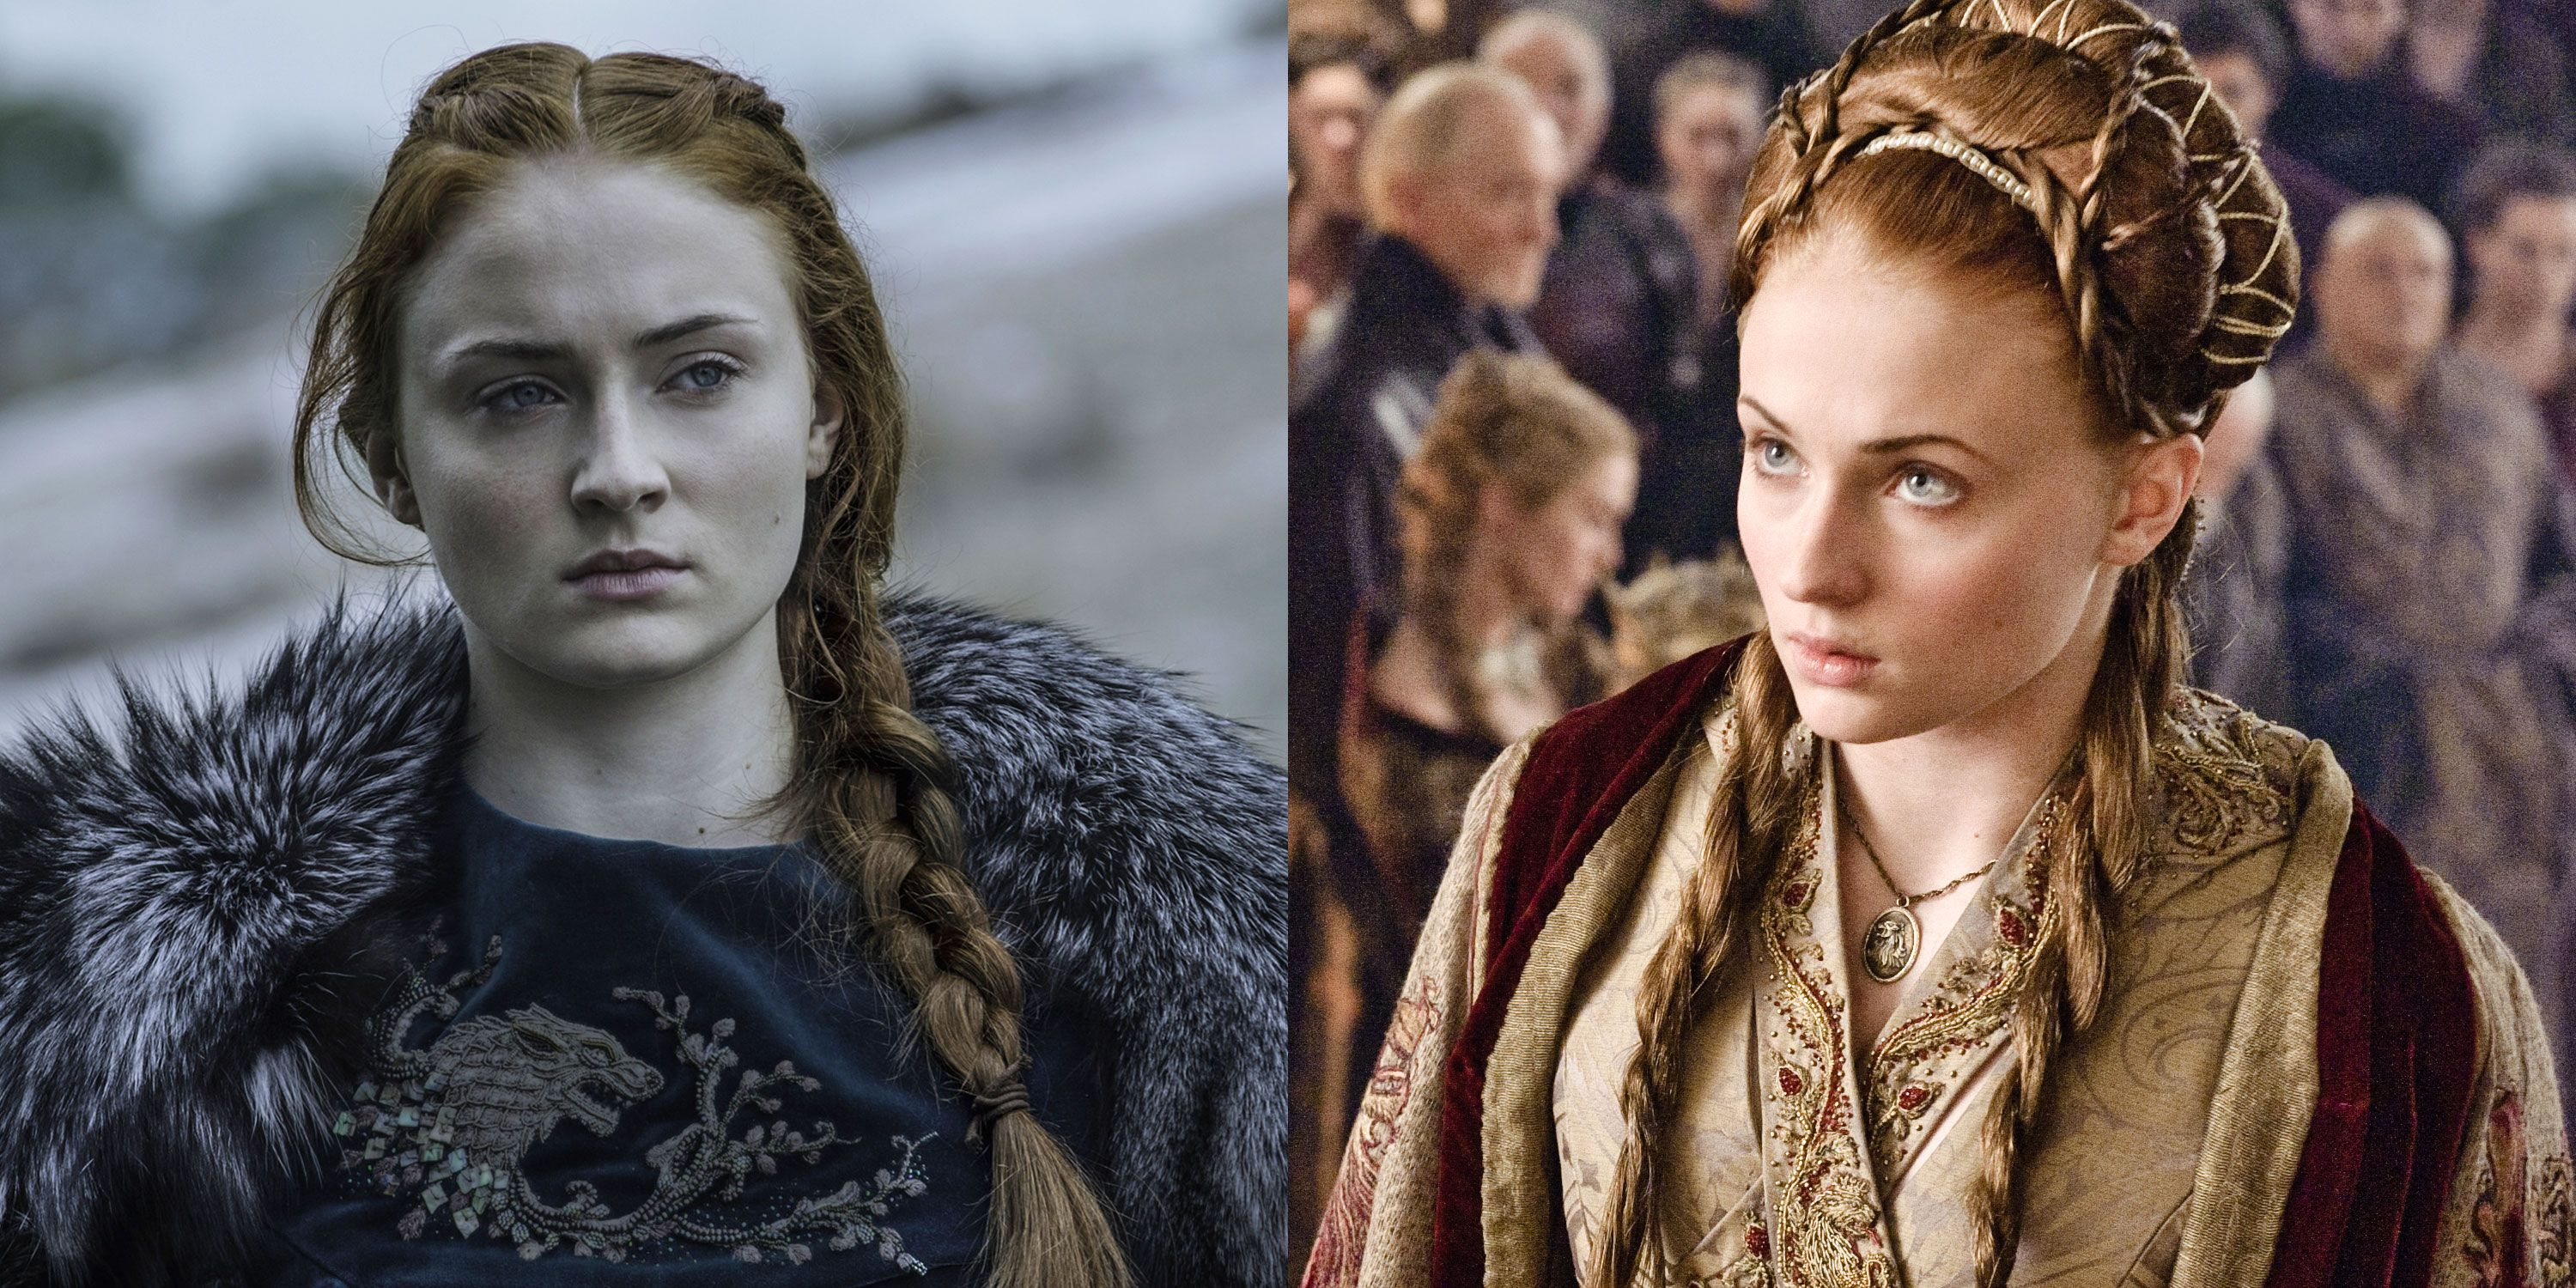 Game of Thrones Sansa Stark Hair Evolution - Game of Thrones Sansa